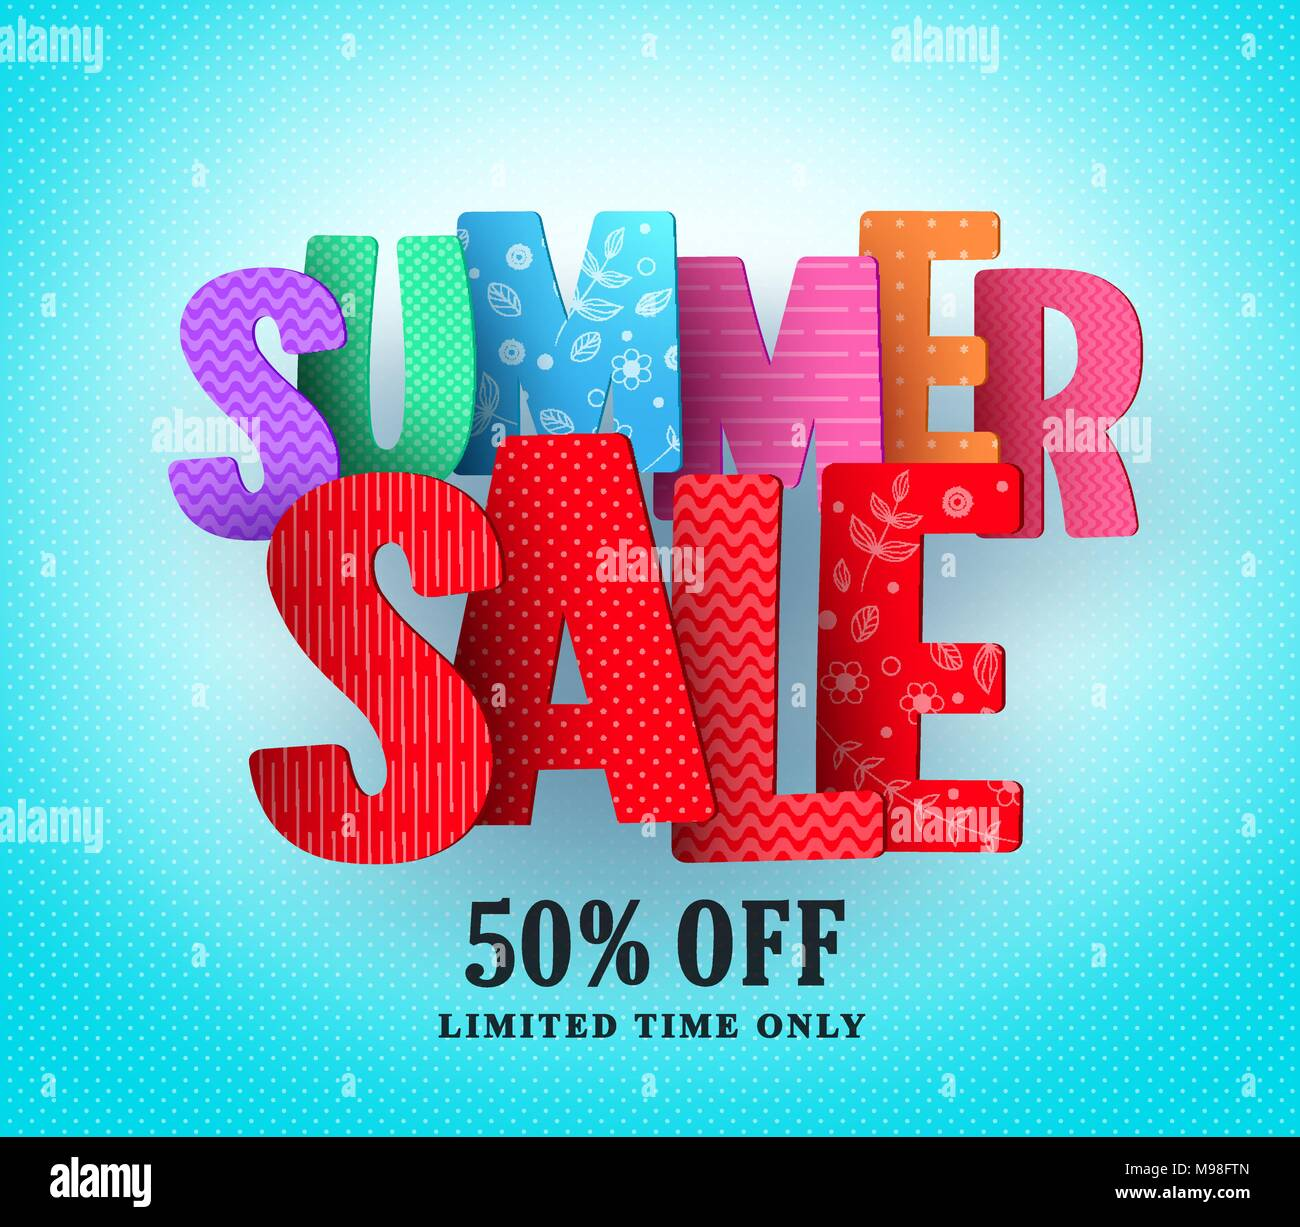 657a69b98 Summer sale vector banner design with colorful sale and discount text in  blue pattern background for summer seasonal discount promotion.